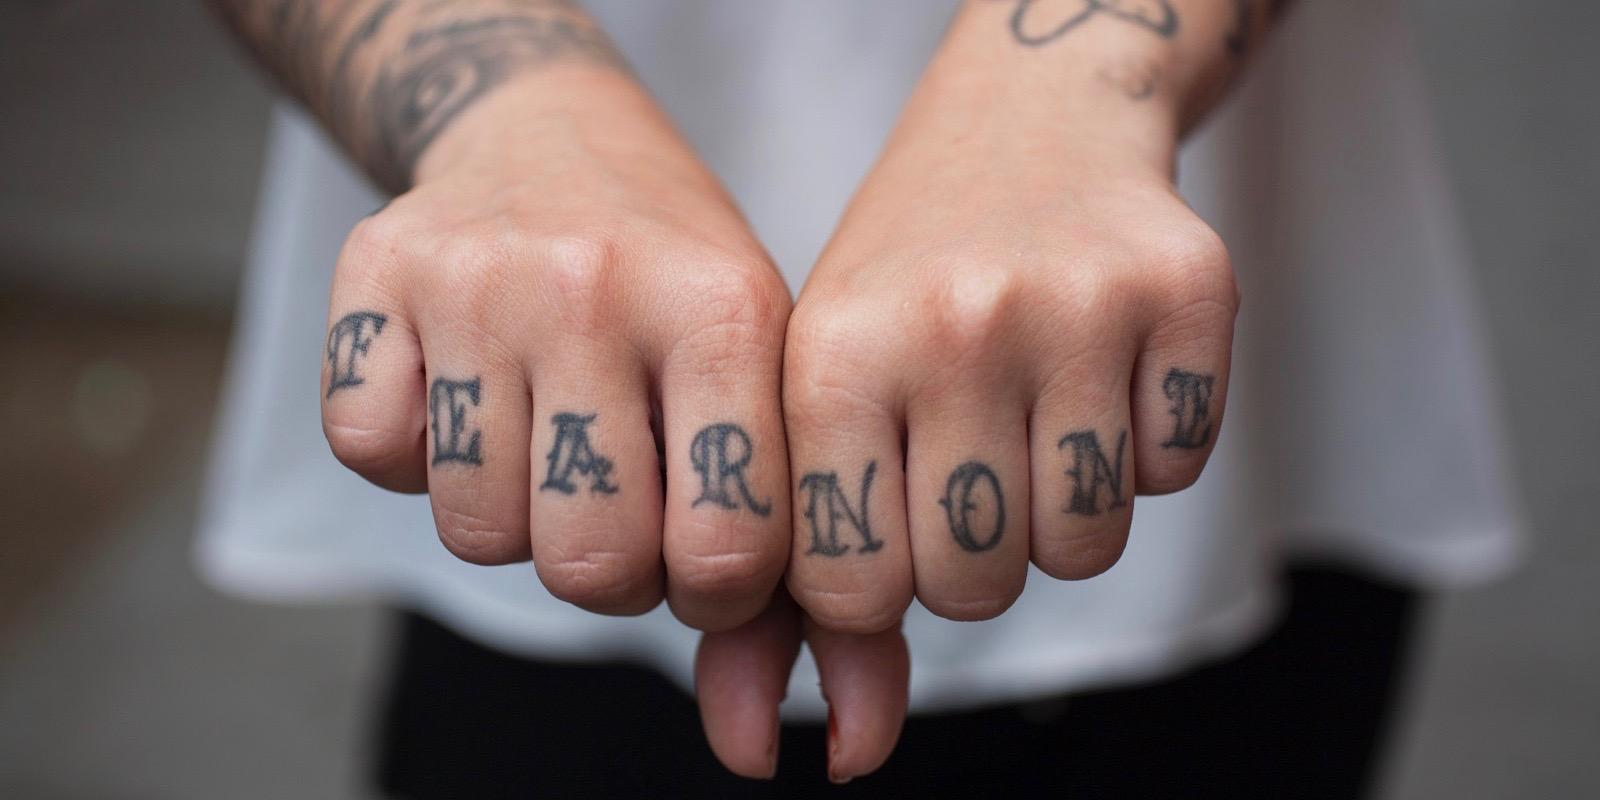 Girl holding out hands with tatoos